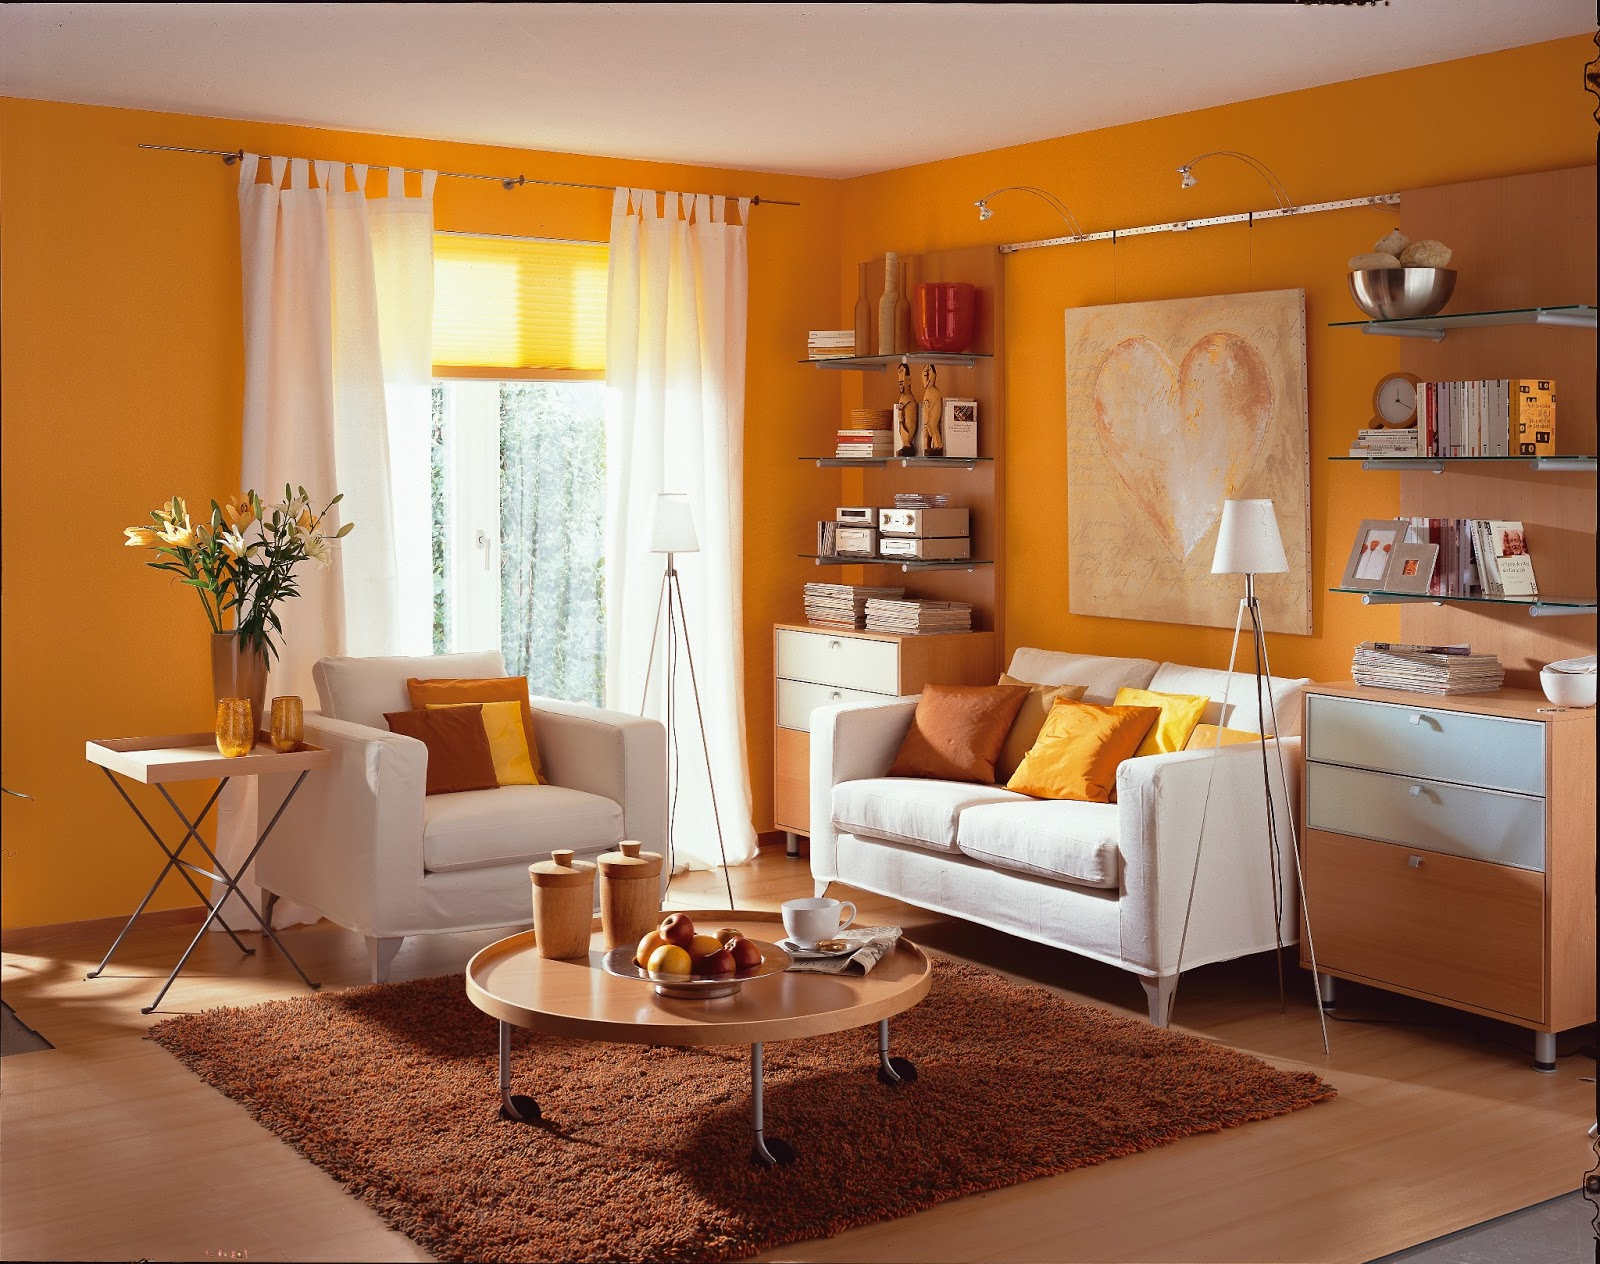 Salas color naranja ideas para decorar dise ar y for Decoracion living moderno